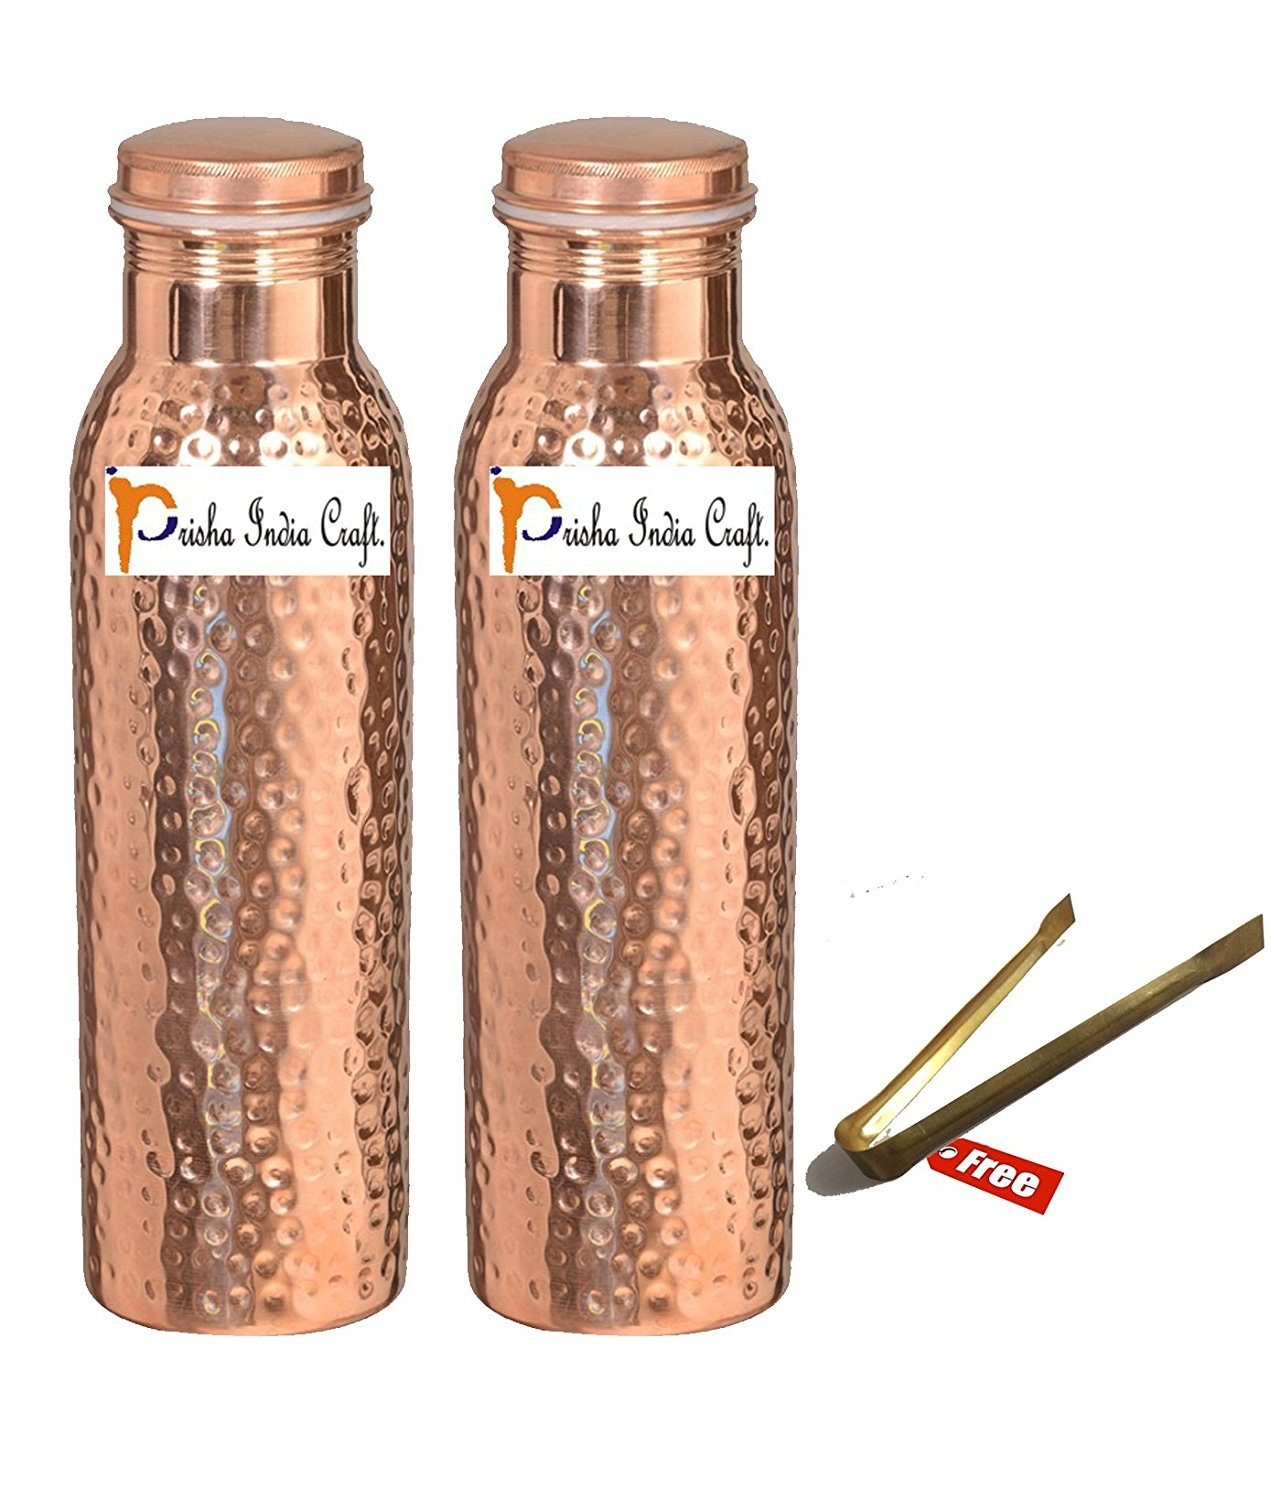 1000ml / 33.81oz - Set of 2 - Prisha India Craft - Hammered Copper Water Bottle | Joint Free, Best Quality Water Bottle - Handmade Christmas Gift